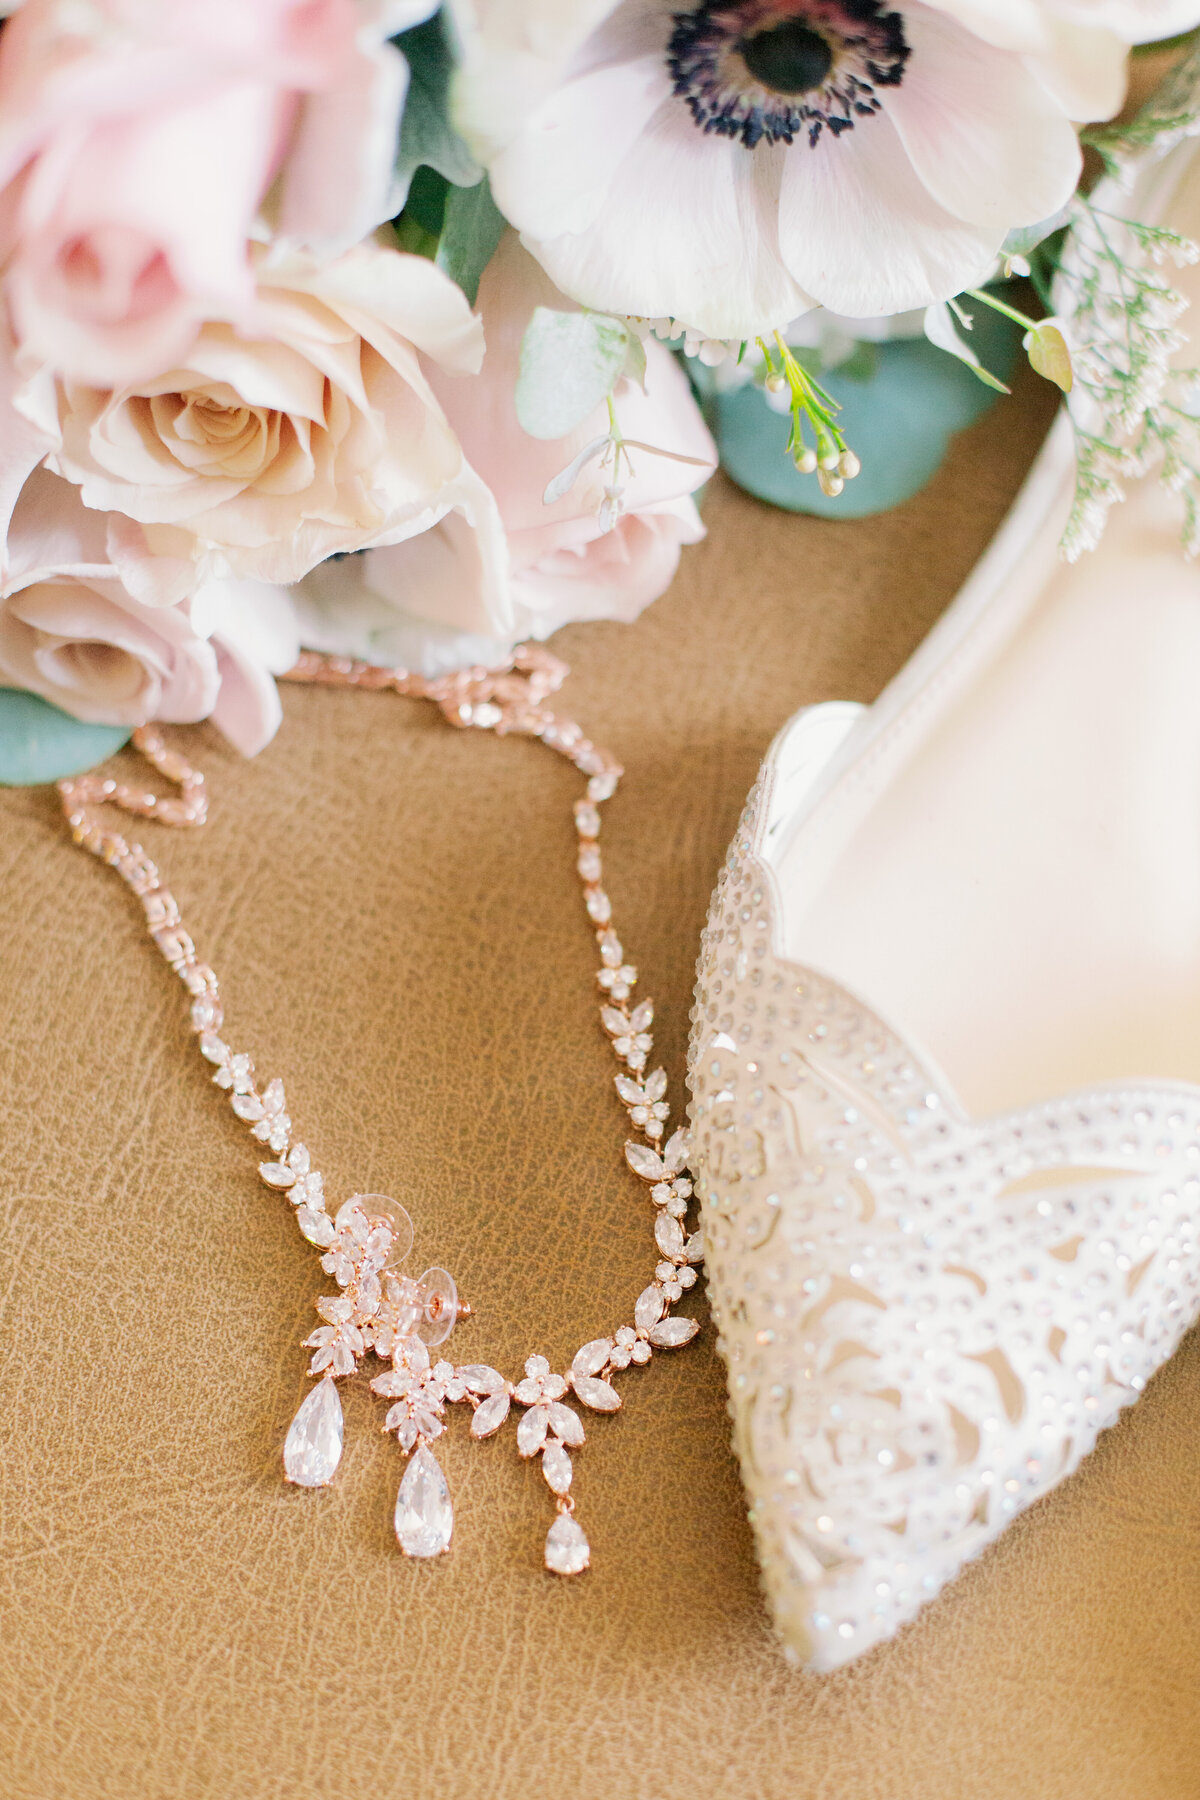 charlotte-nc-wedding-photography-megan-pitts00054